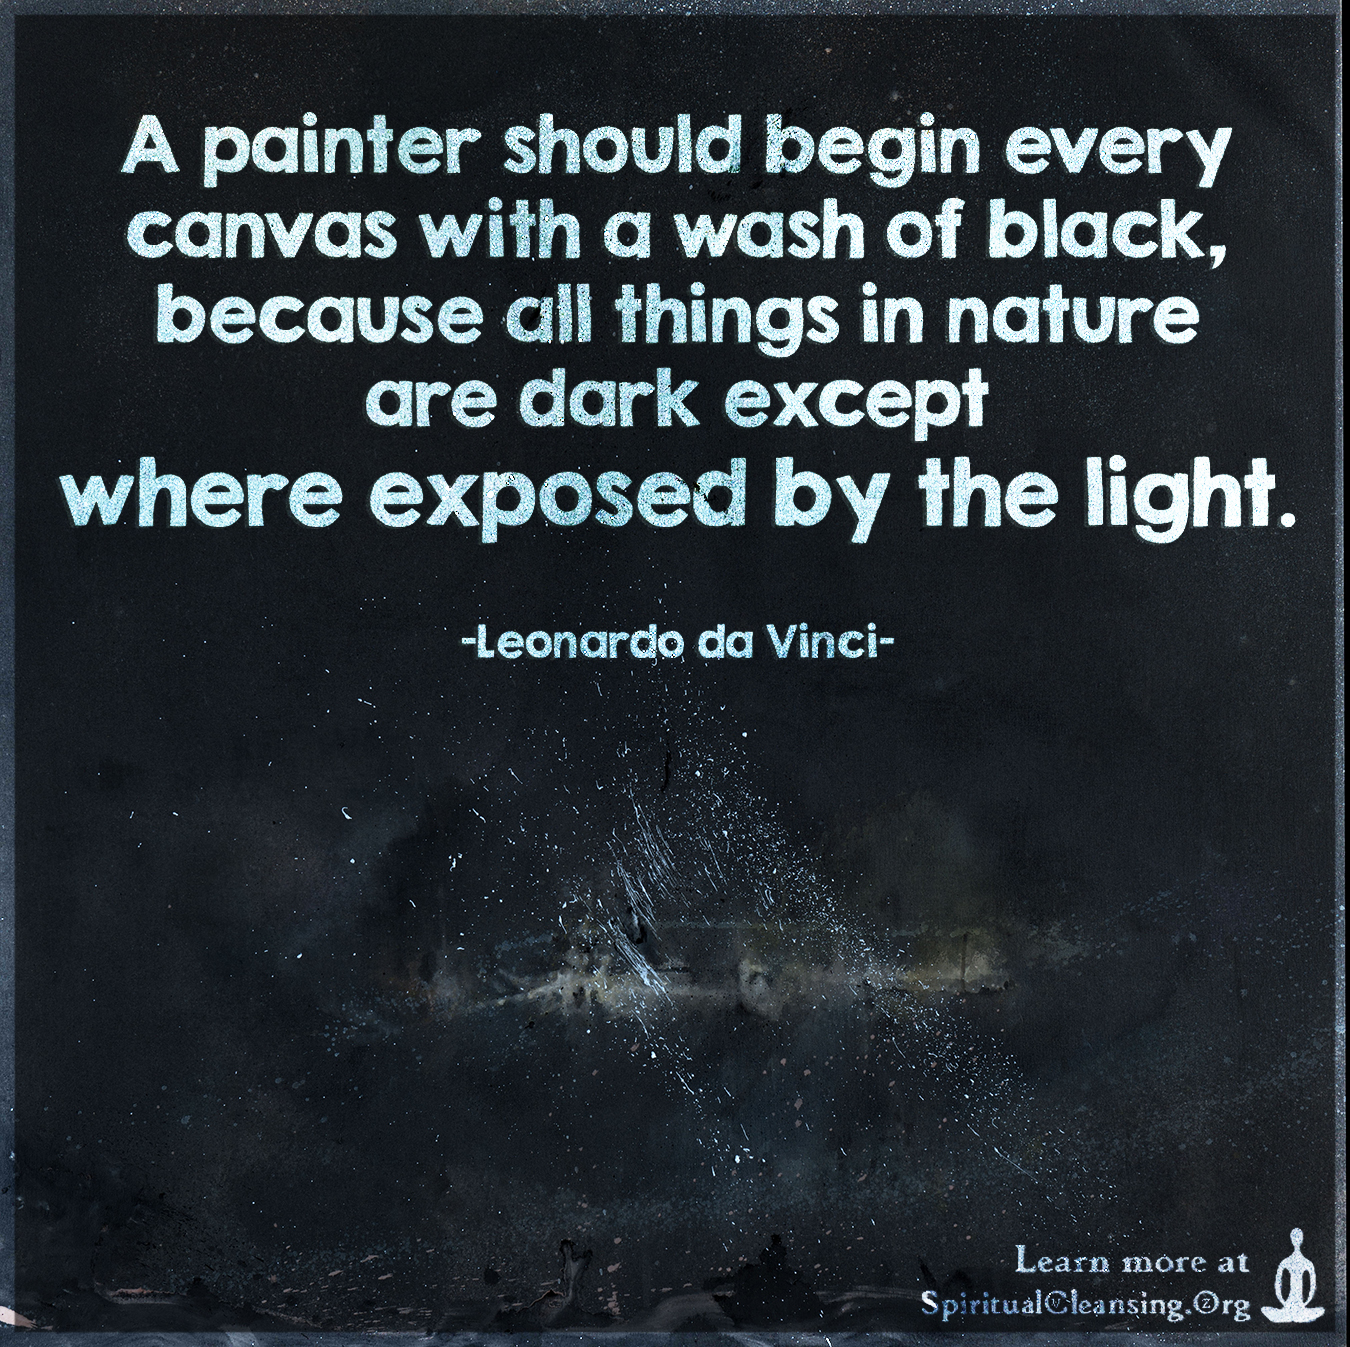 A painter should begin every canvas with a wash of black, because all things